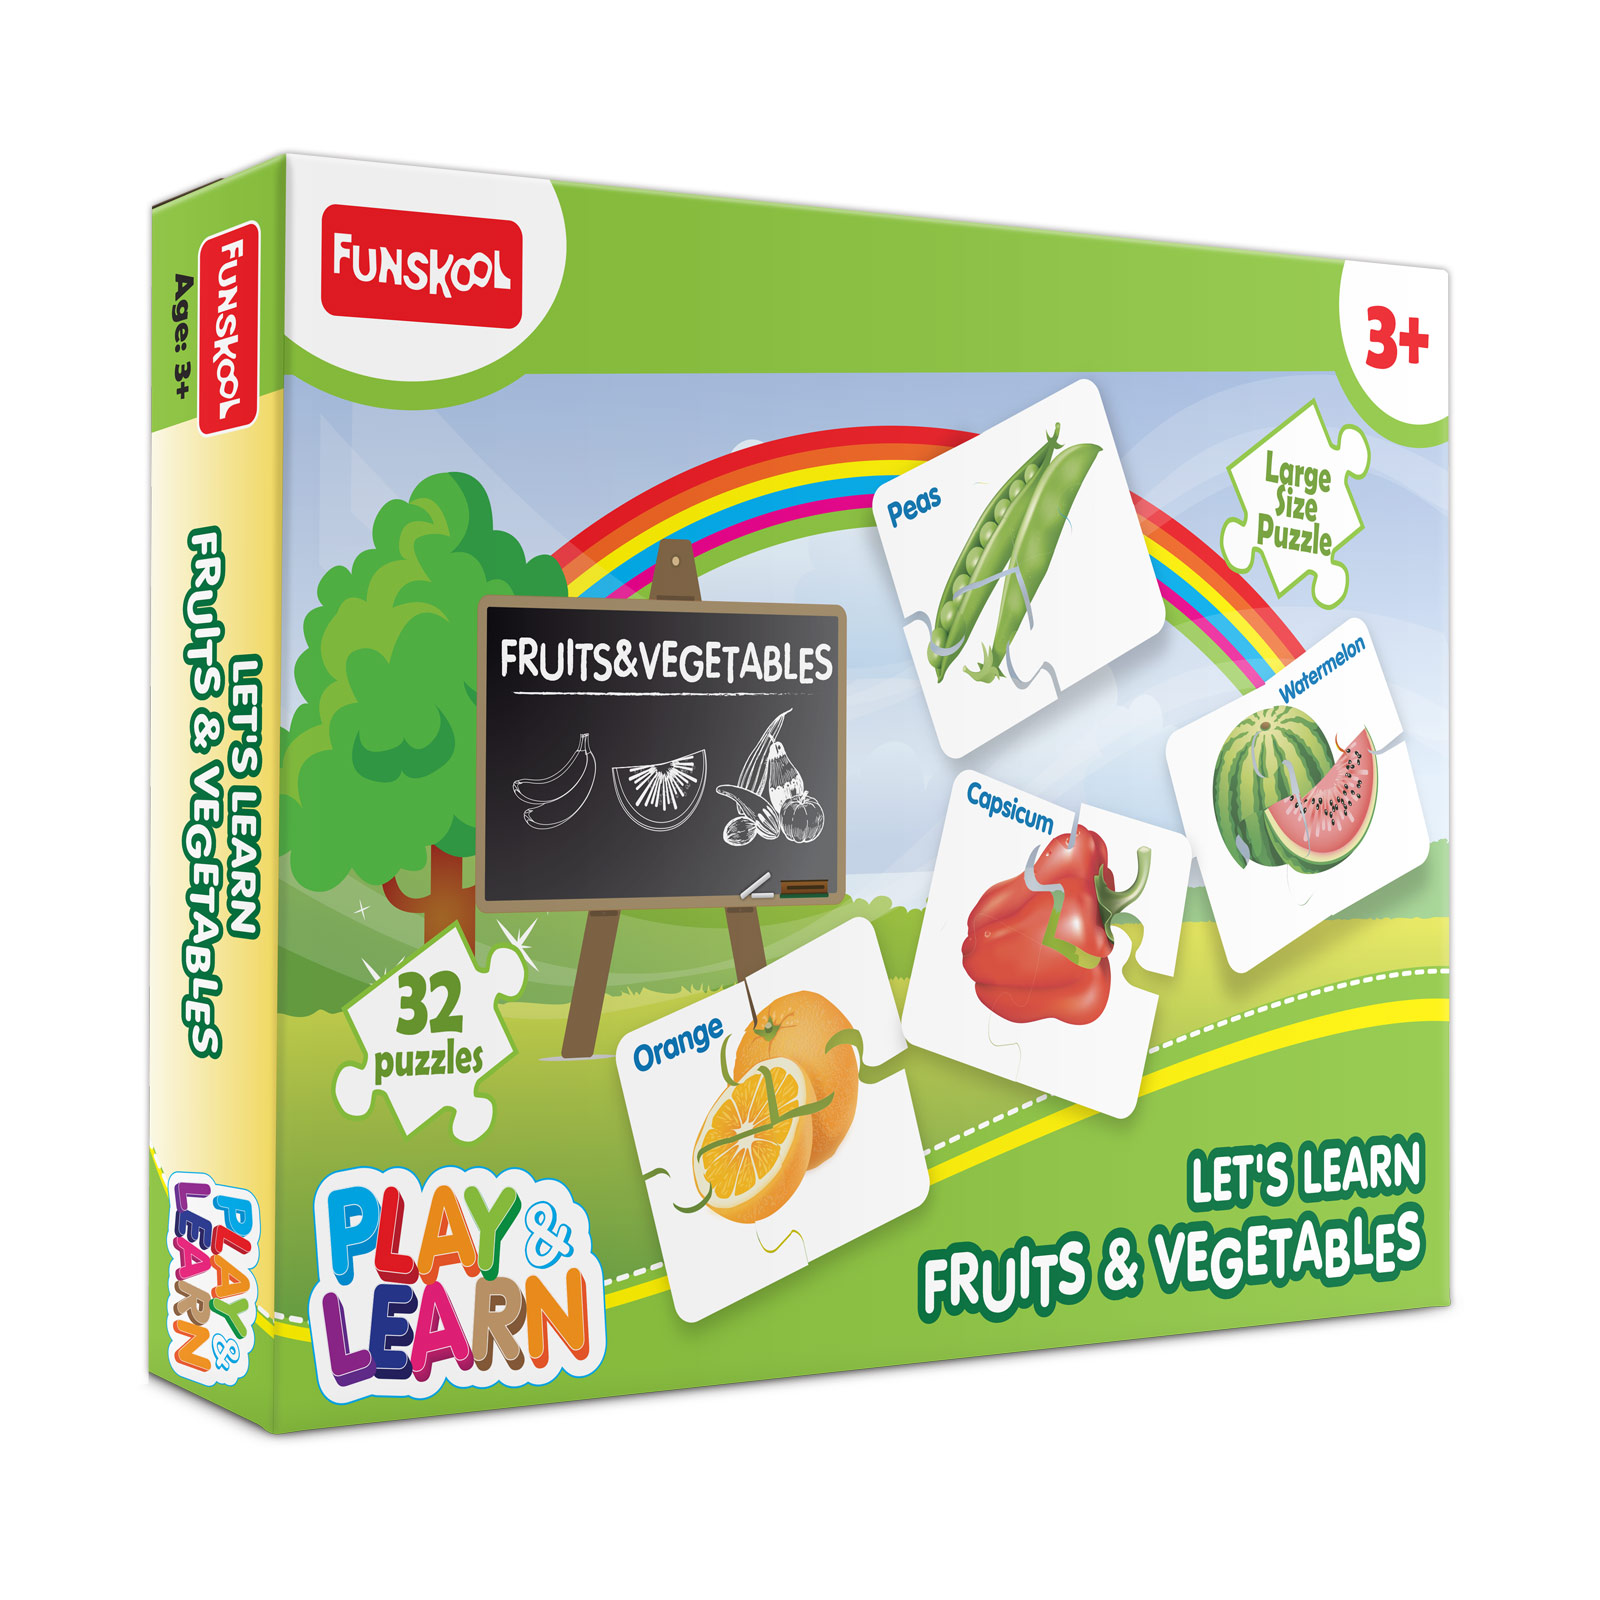 Let's Learn Fruits & Vegetables Puzzle